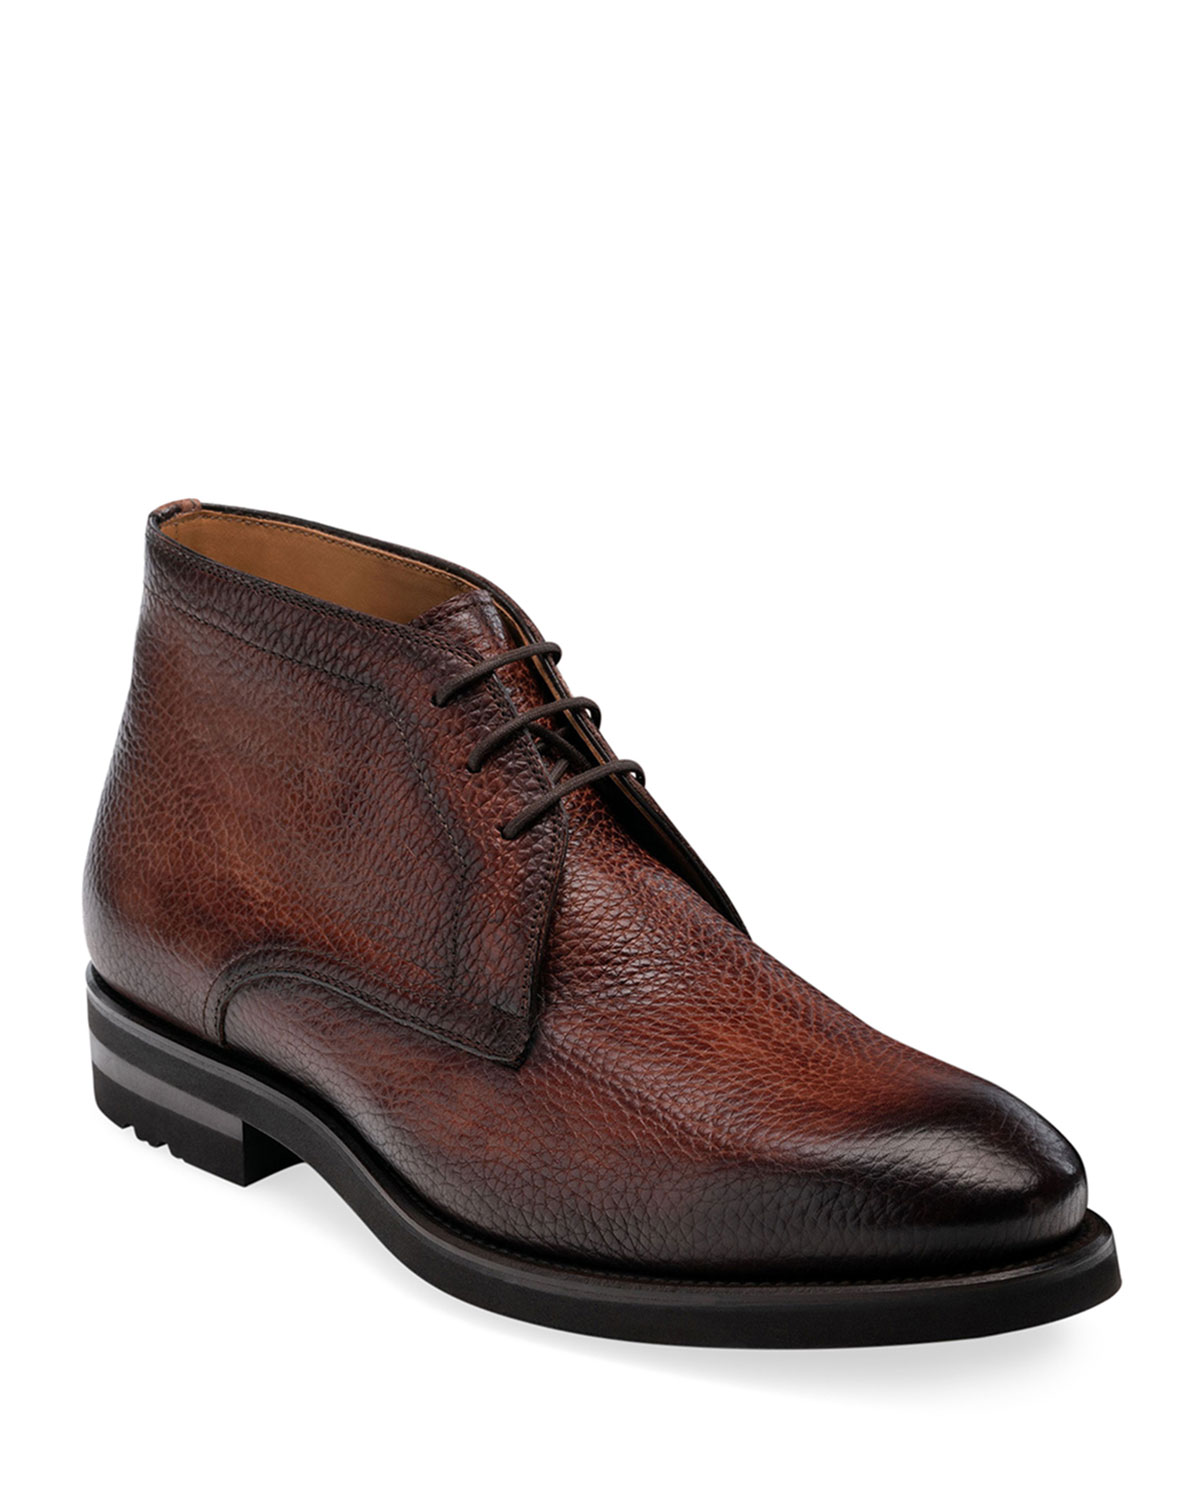 Men's Malone Pebbled Leather Chukka Boots